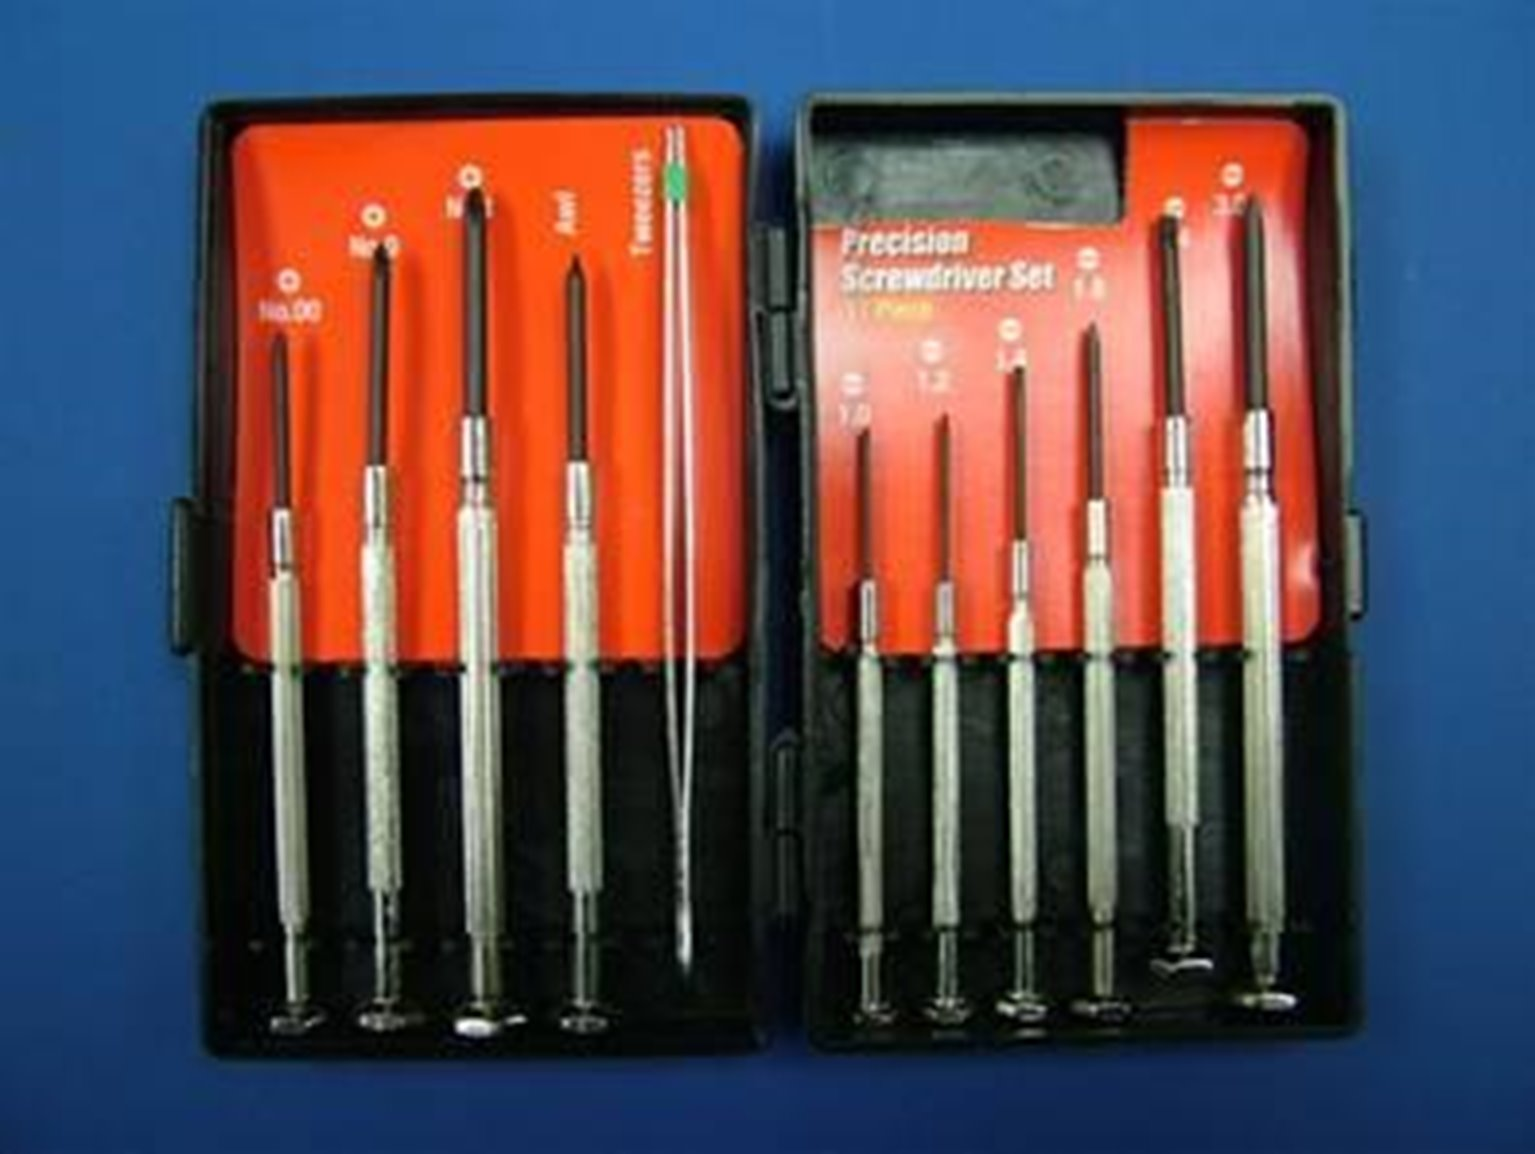 Model Railway Screwdriver Set